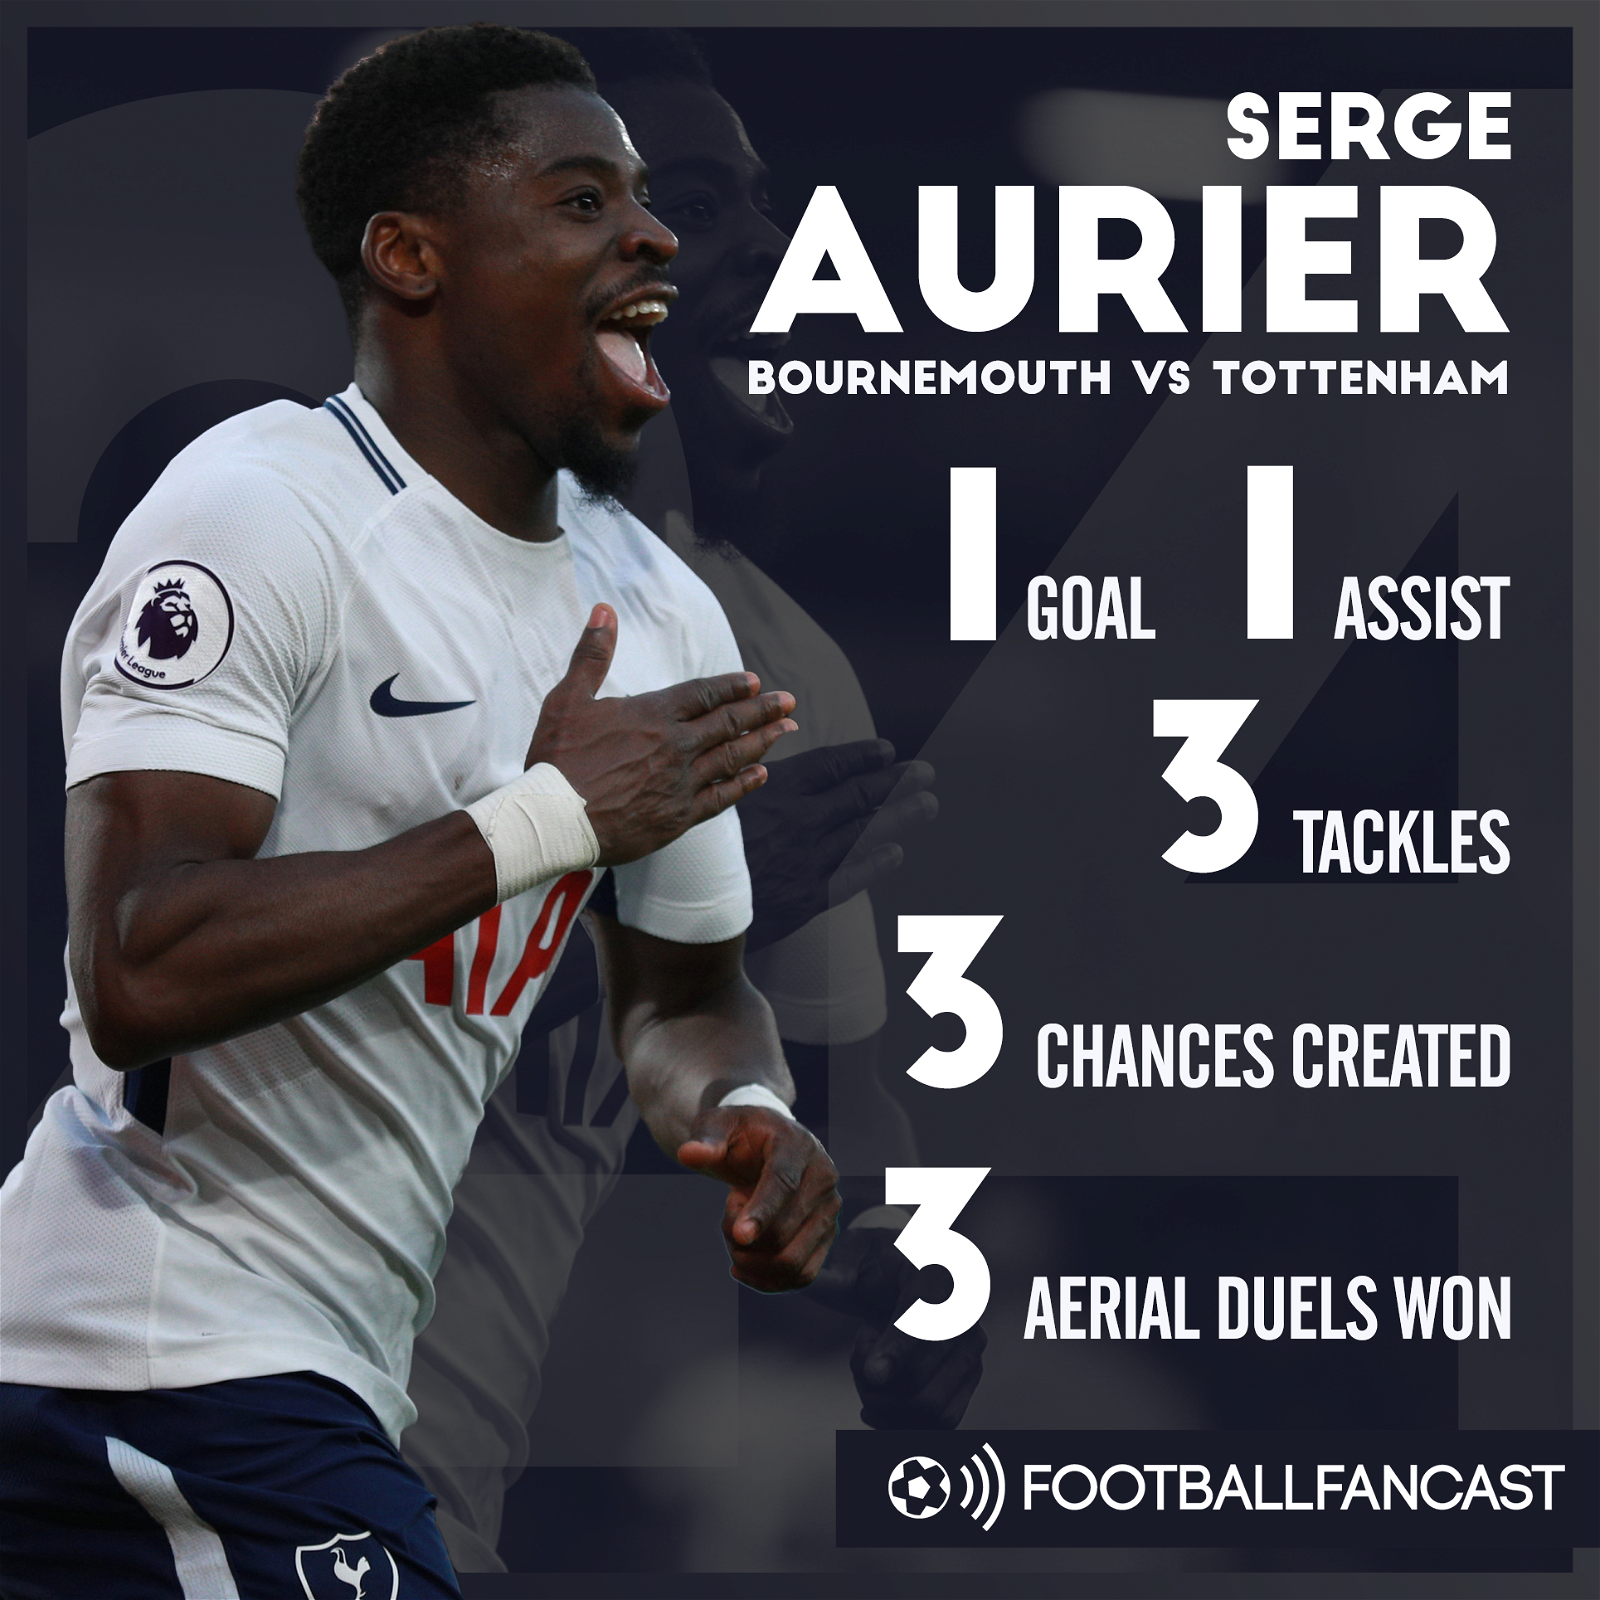 Serge Aurier's stats from Tottenham's 4-1 win over Bournemouth